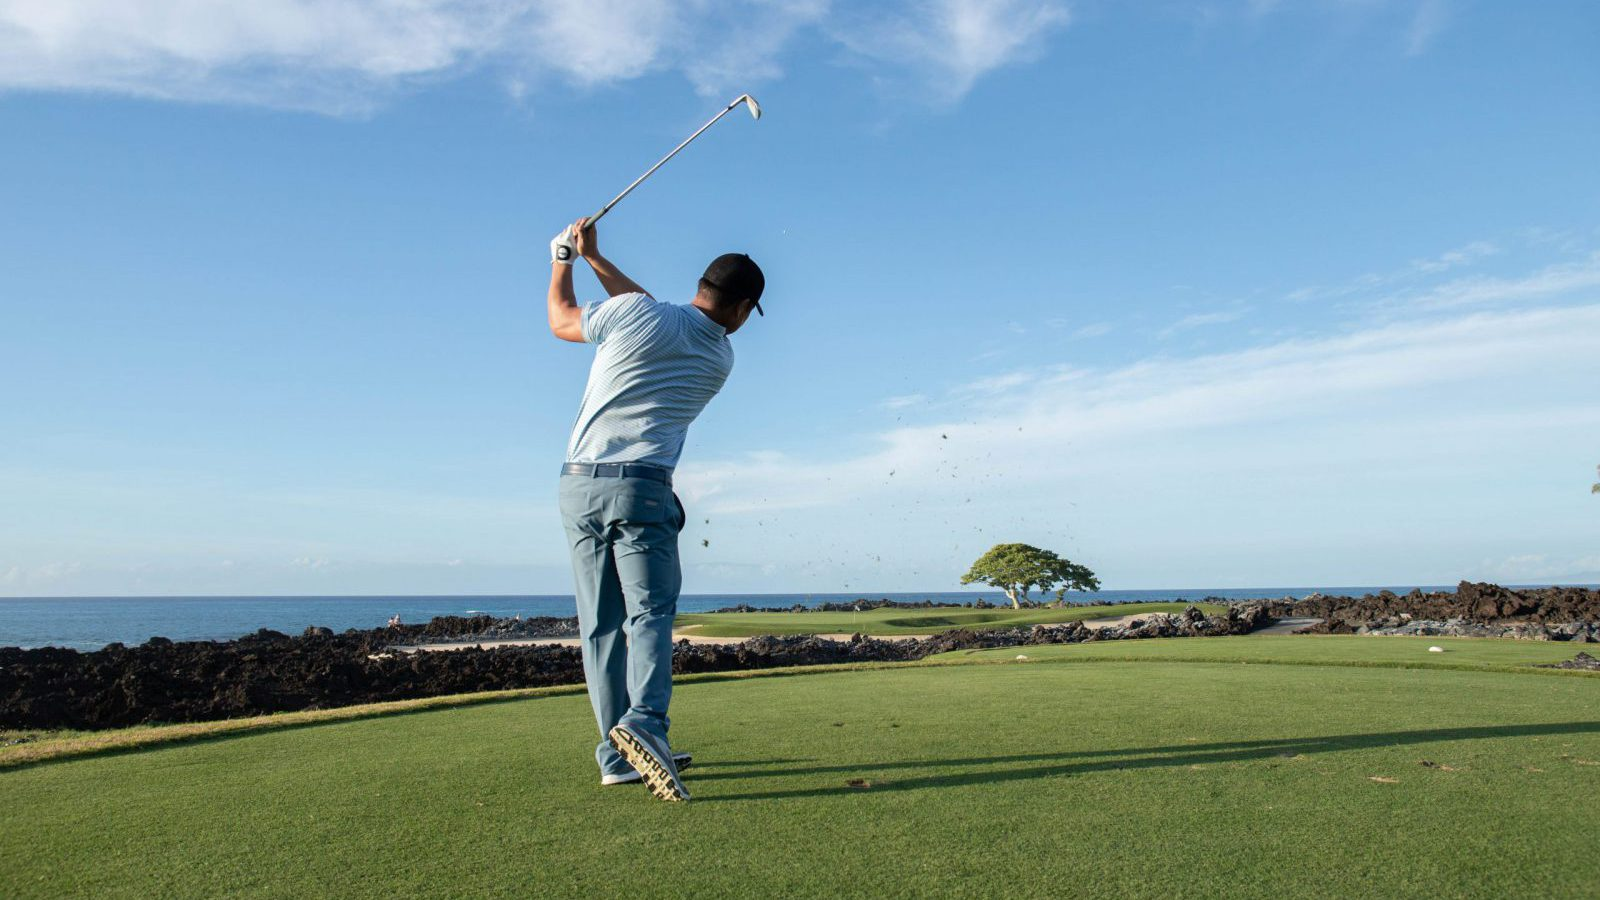 Garratt Okamura golf pro hits golf ball looking towards a blue sky and the ocean